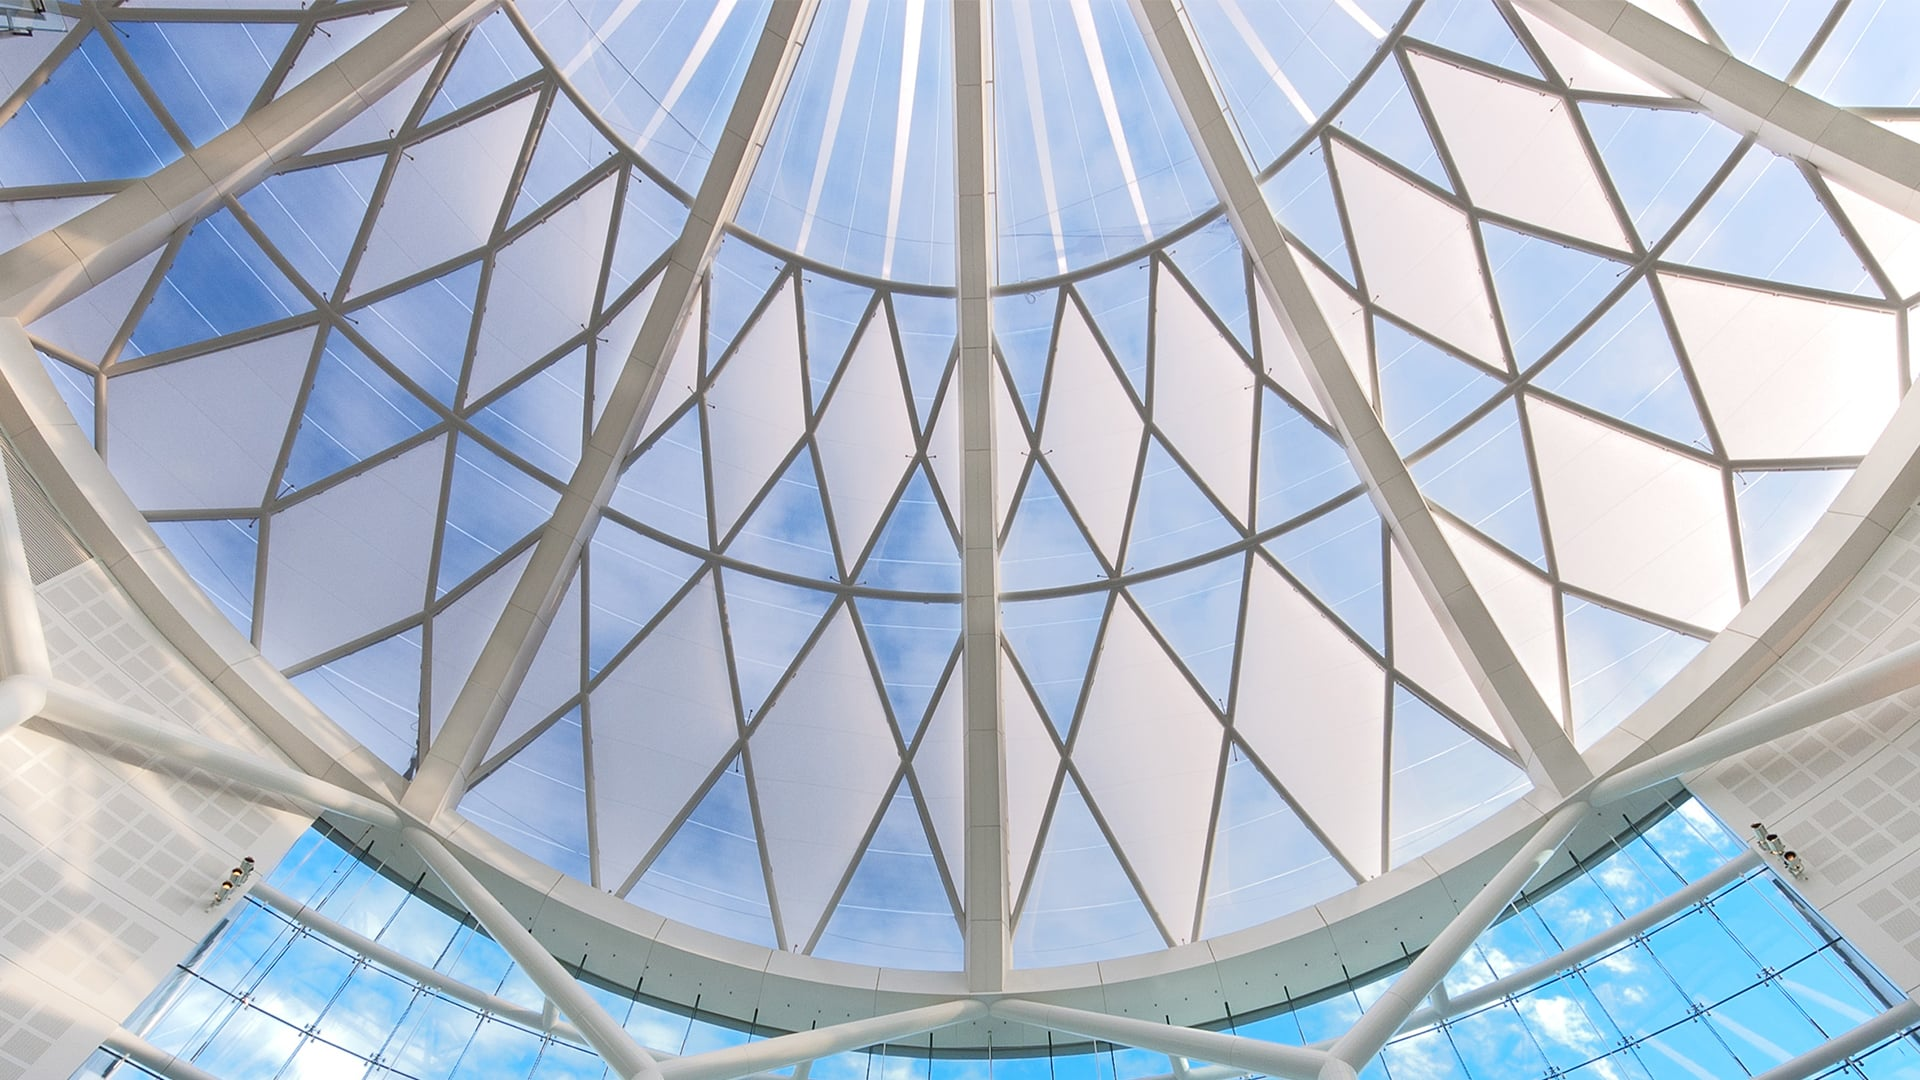 An award winning addition to the Johannesburg skyline, Sandton City is the first project in South Africa to utilise Texlon® ETFE technology.